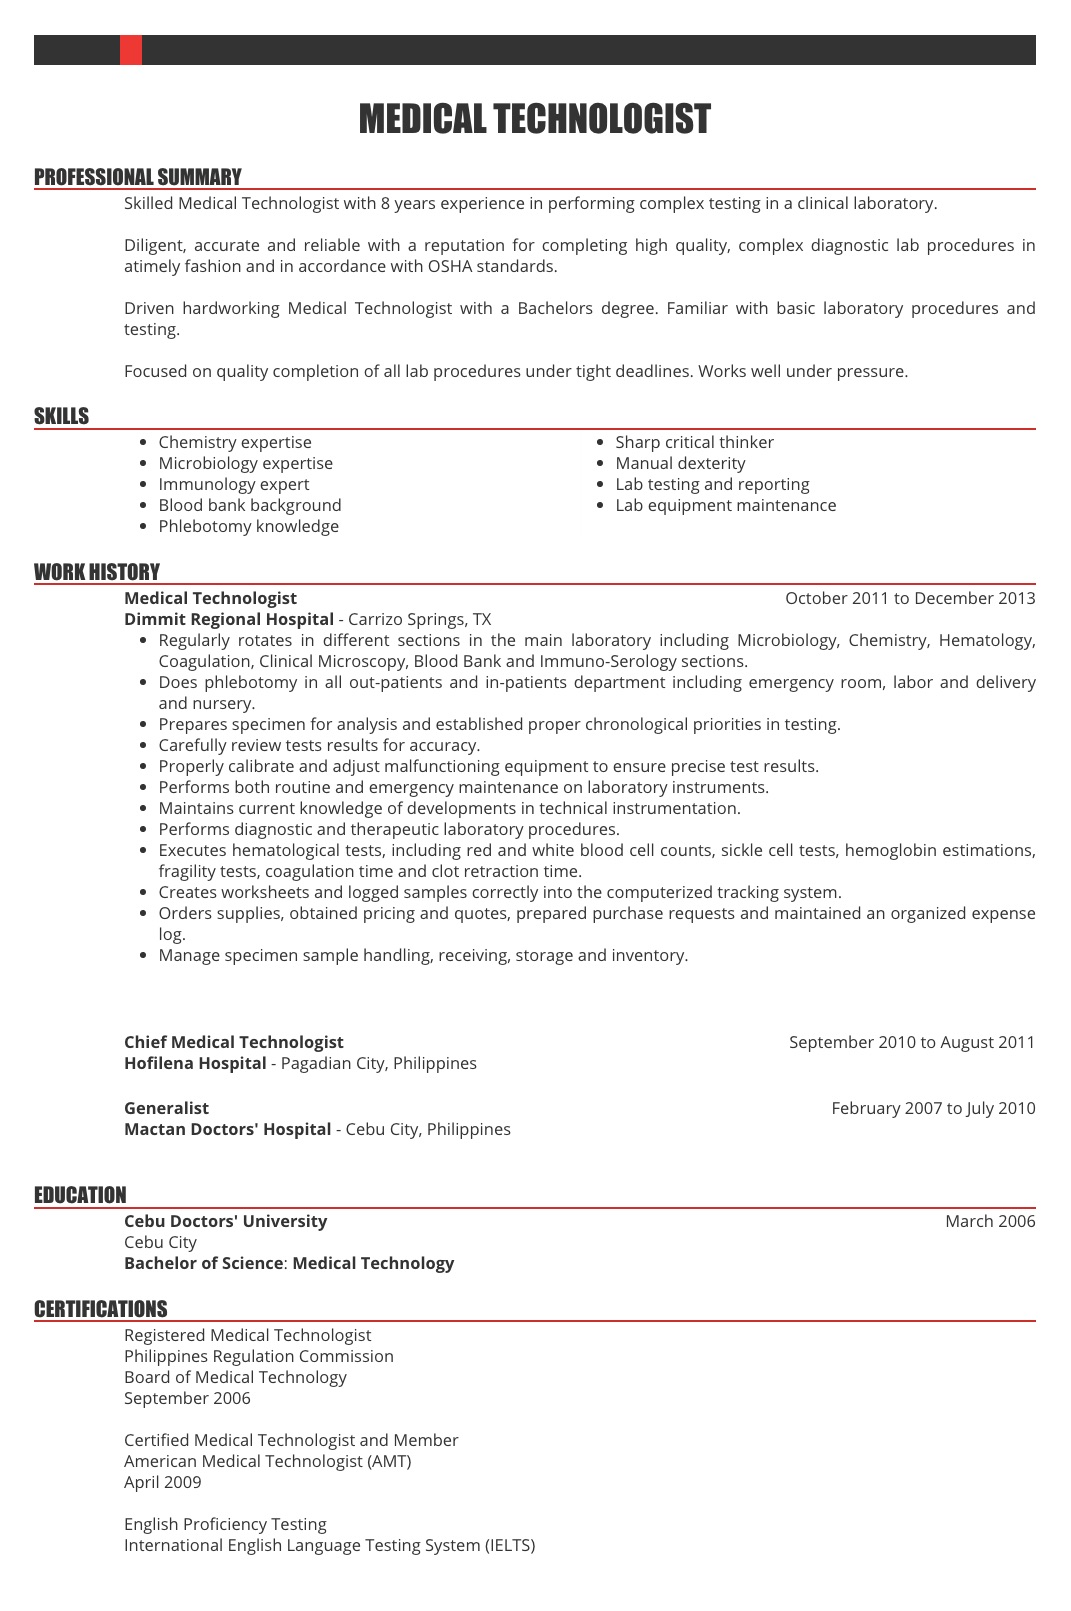 Resume Samples For Healthcare Workers In The Philippines